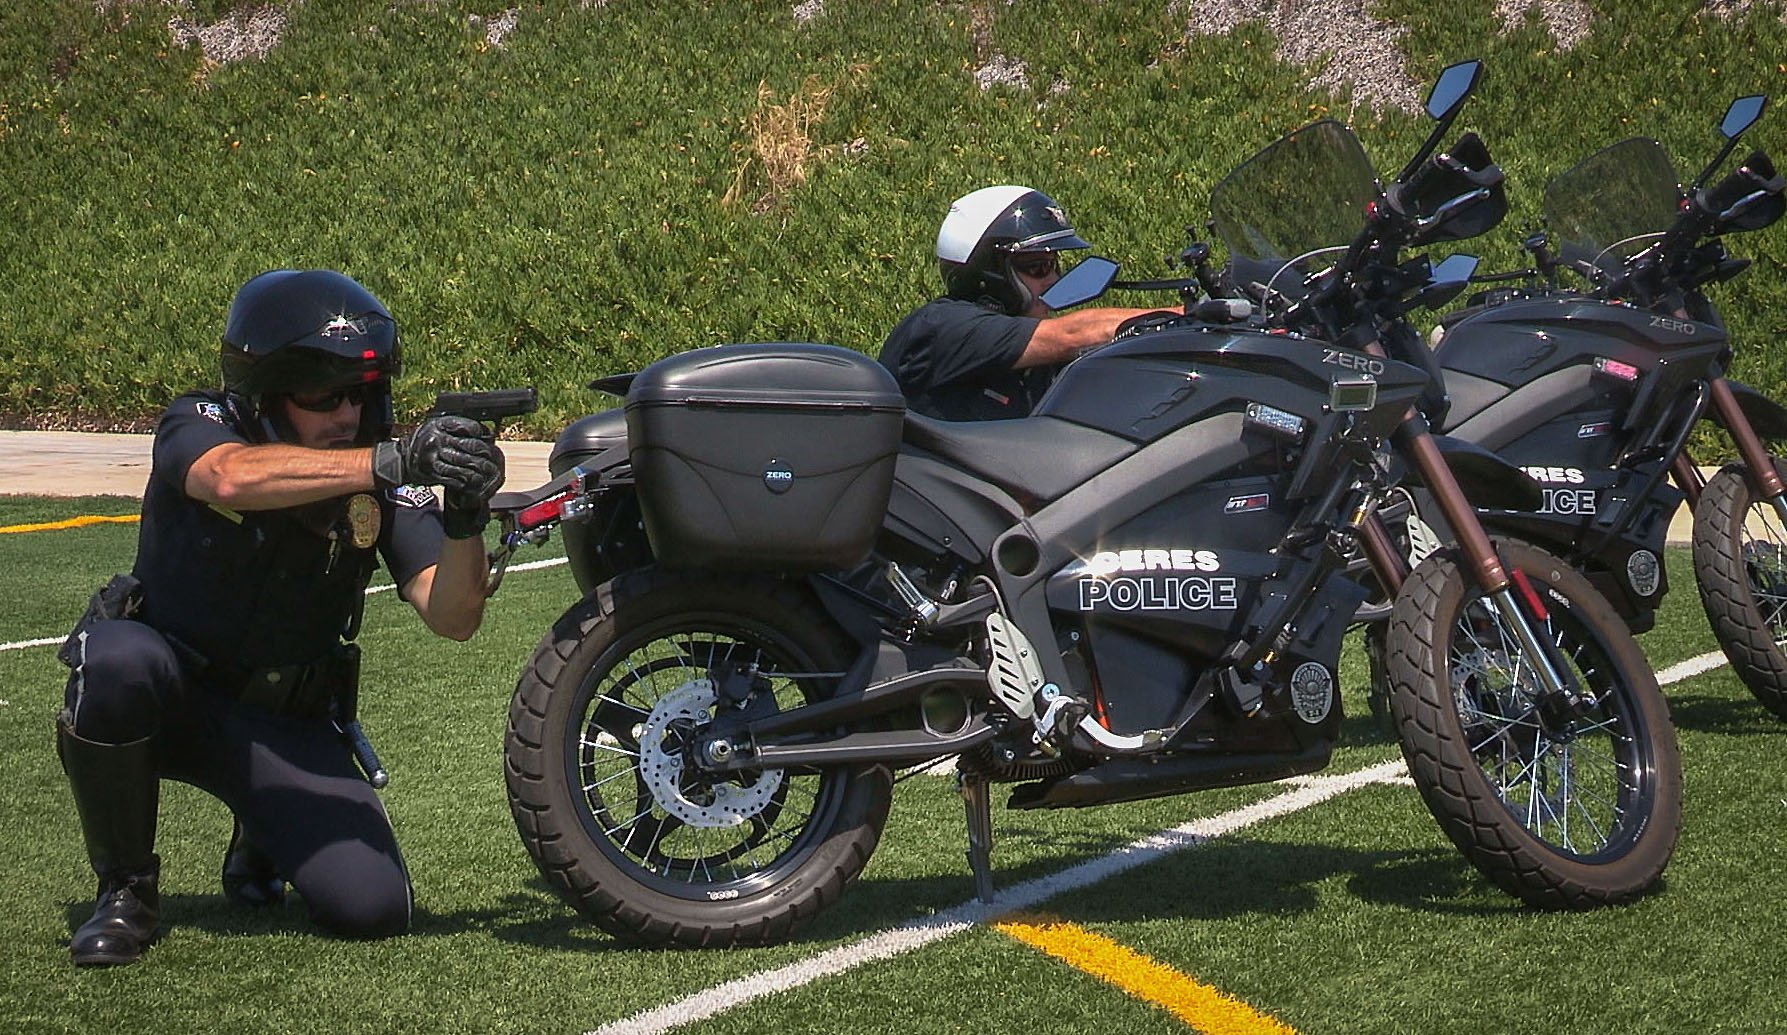 Right Practice At The Ceres Police Department Firing Range In A Mock Exercise That Uses Their Zero Motorcycles As Cover Photo By Jay Mcnally